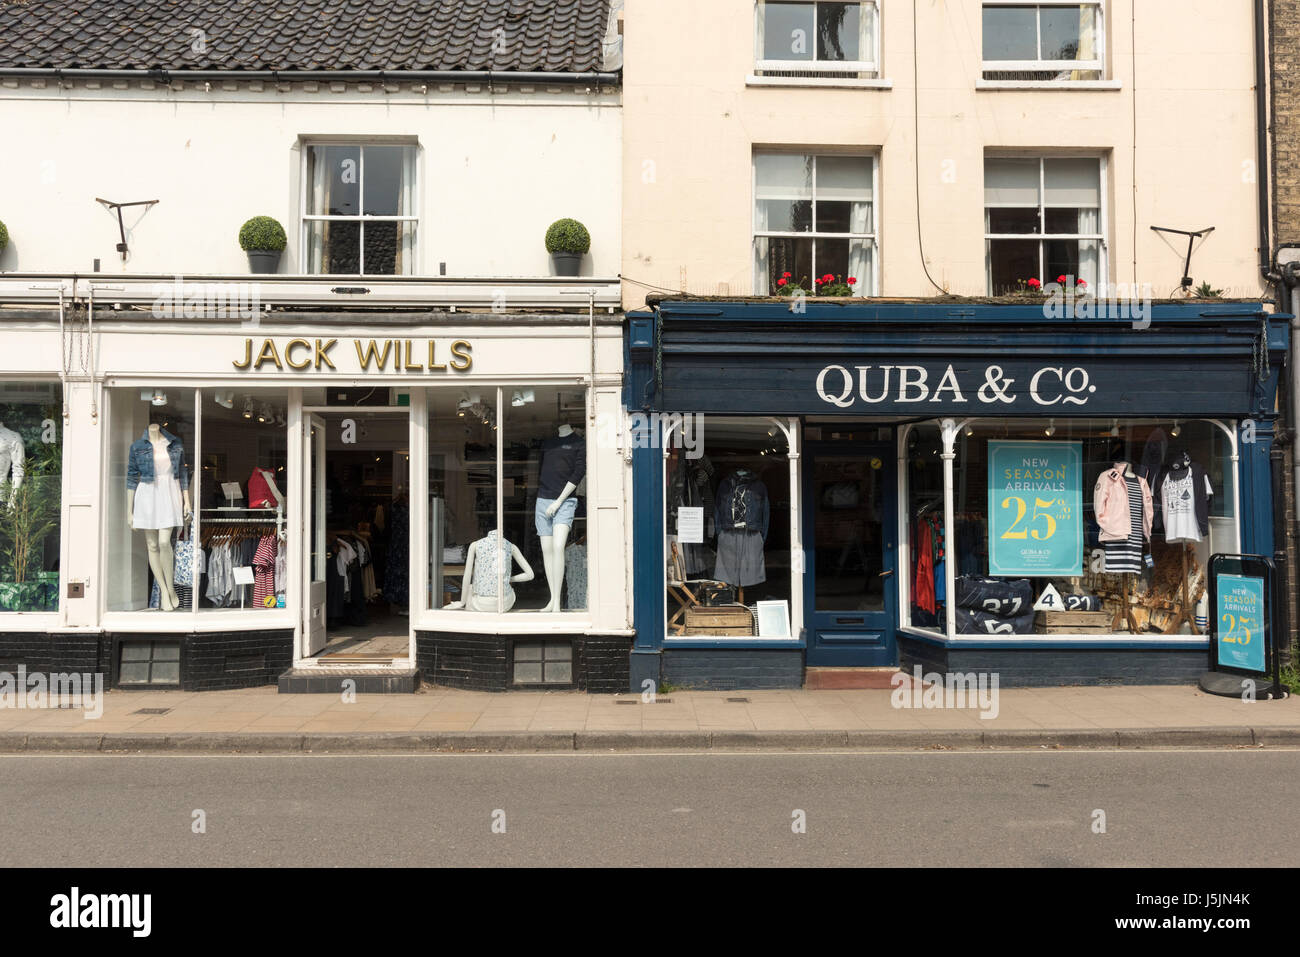 Jack Wills and Quba and co clothes shops next to each other in Southwold Suffolk UK - Stock Image